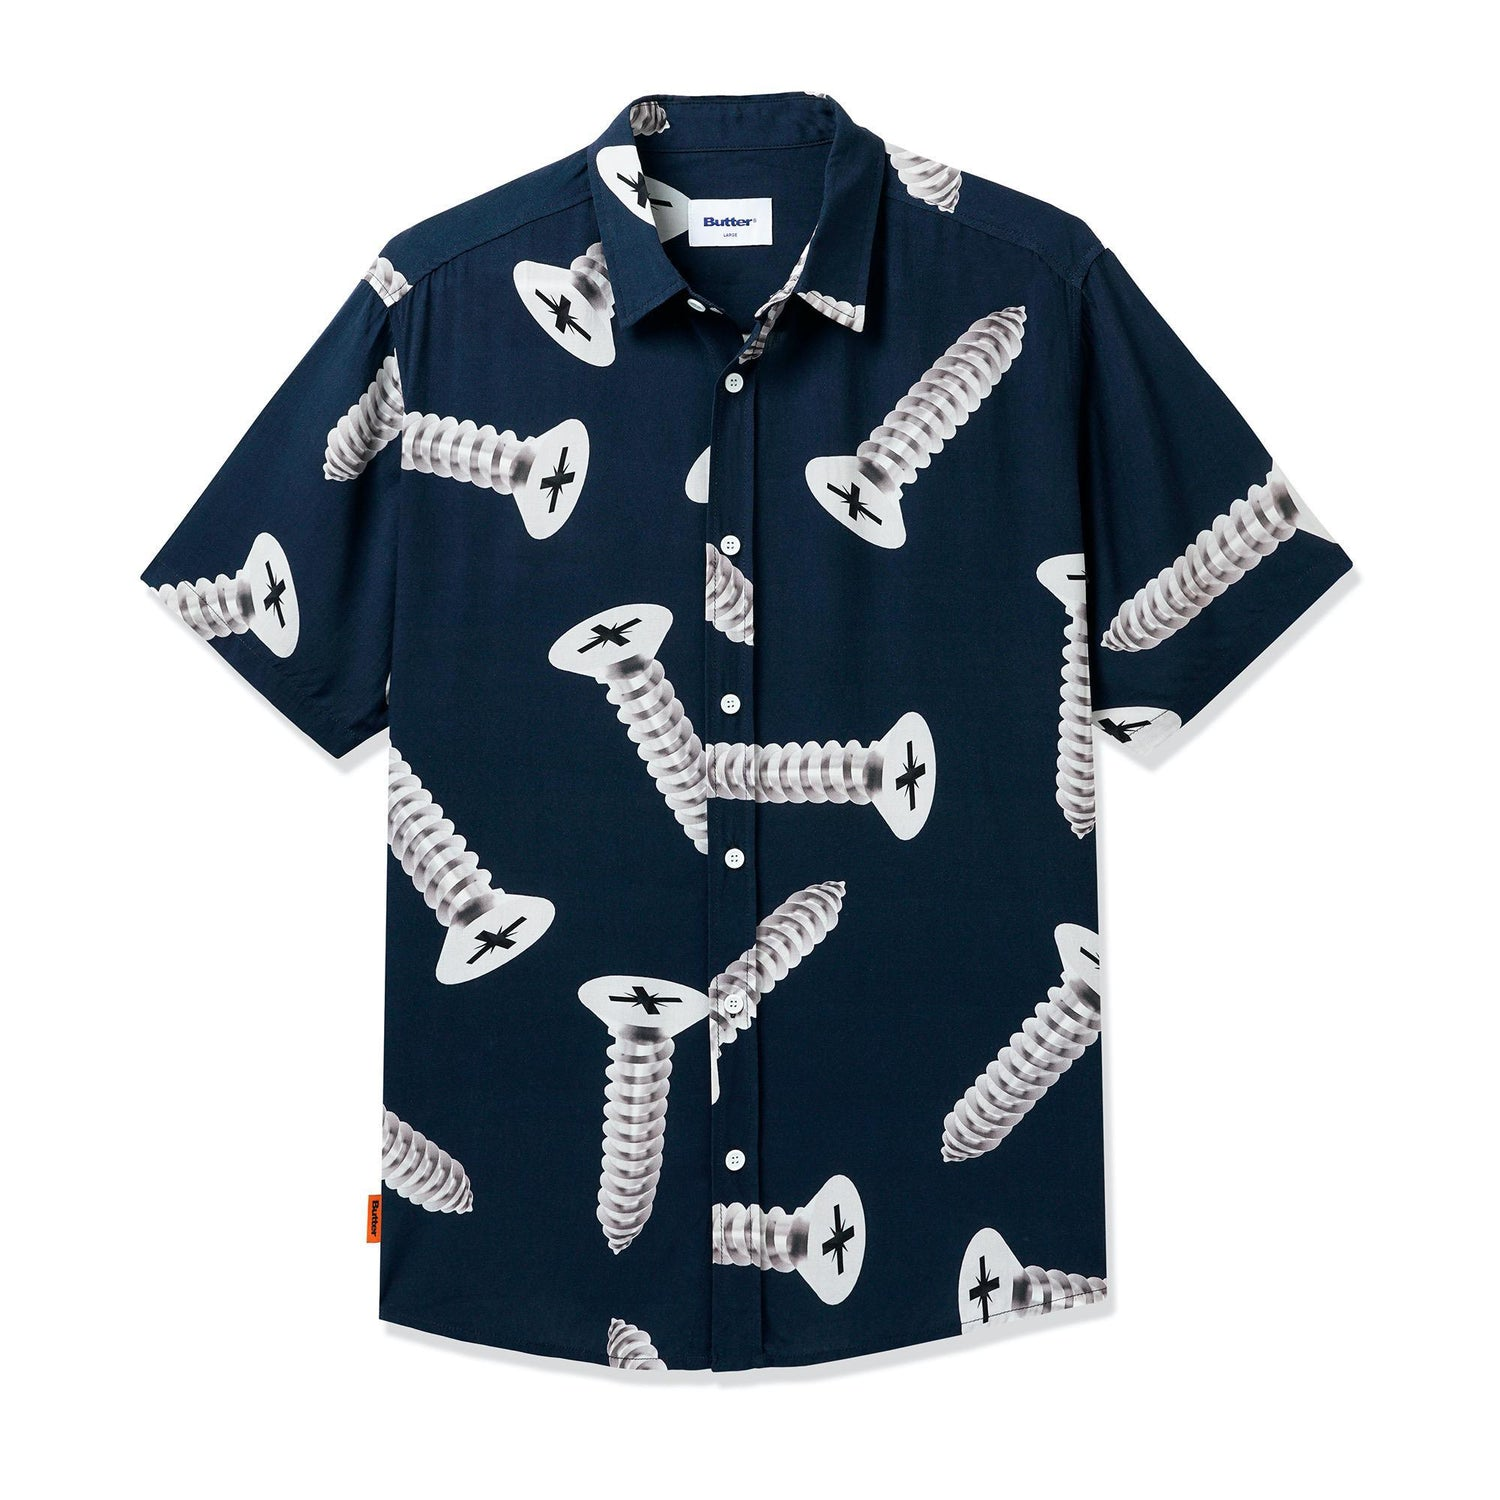 Screw S/S Shirt, Navy